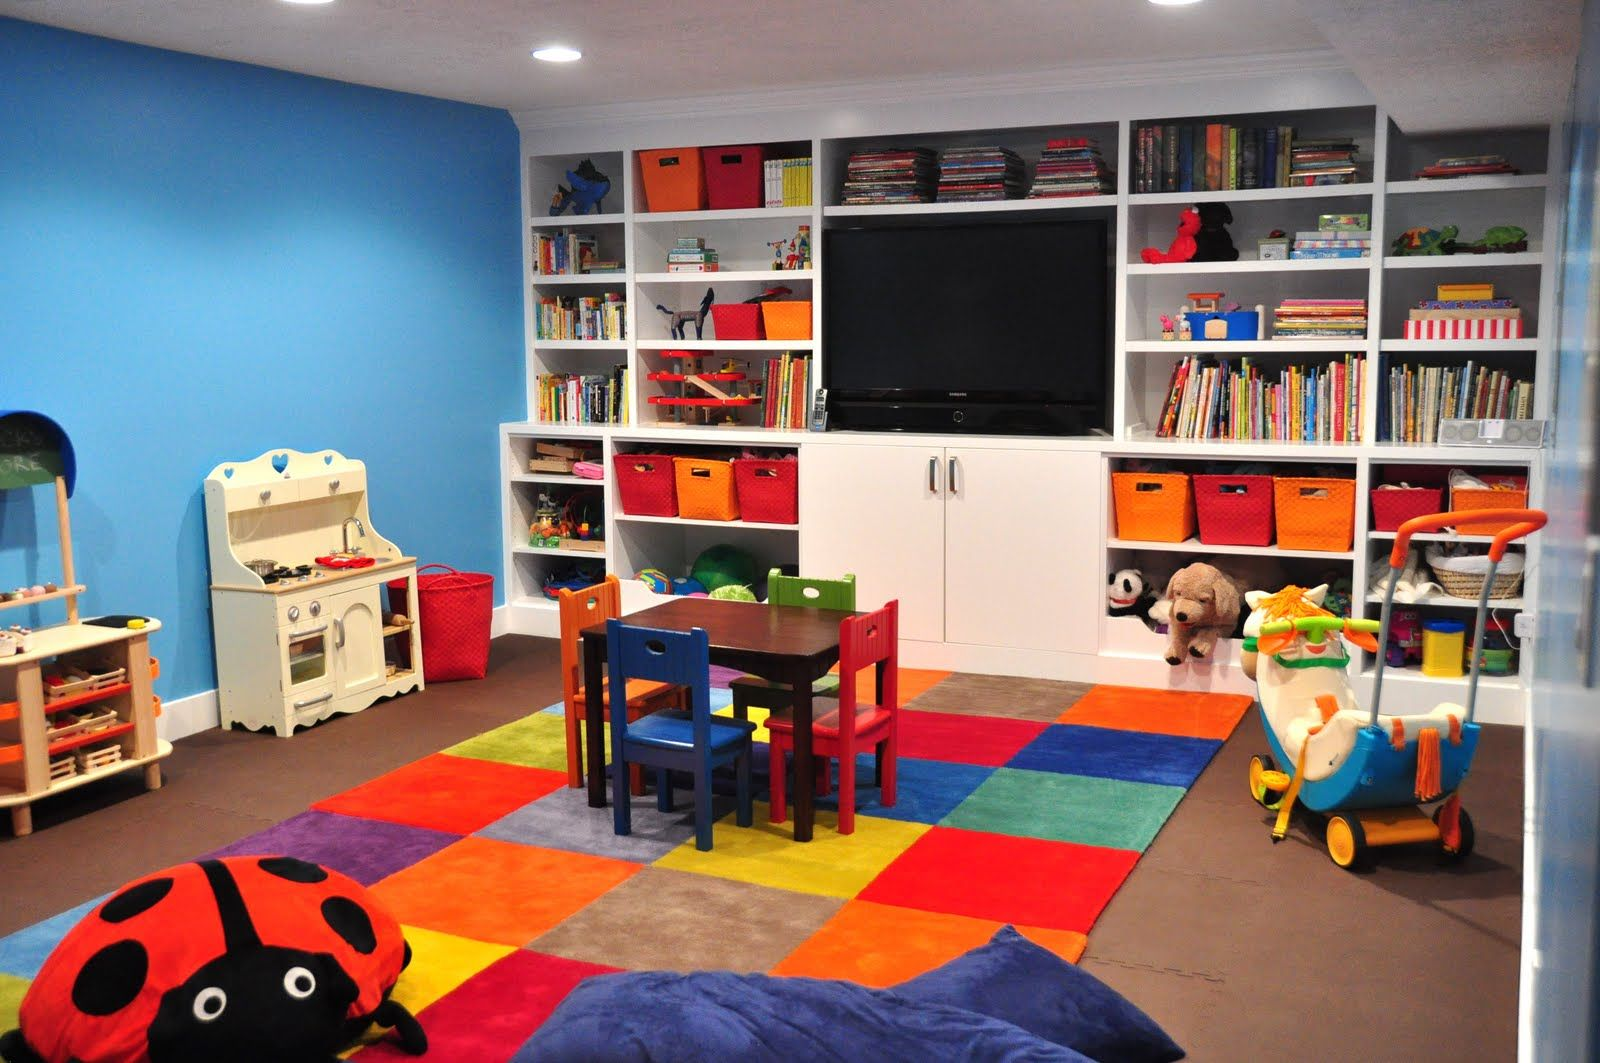 Children Playroom Ideas Patchwork Rug Of Bright Multicolored Squares Built In Storage And Kids Playroom Furniture Basement Playroom Kids Playroom